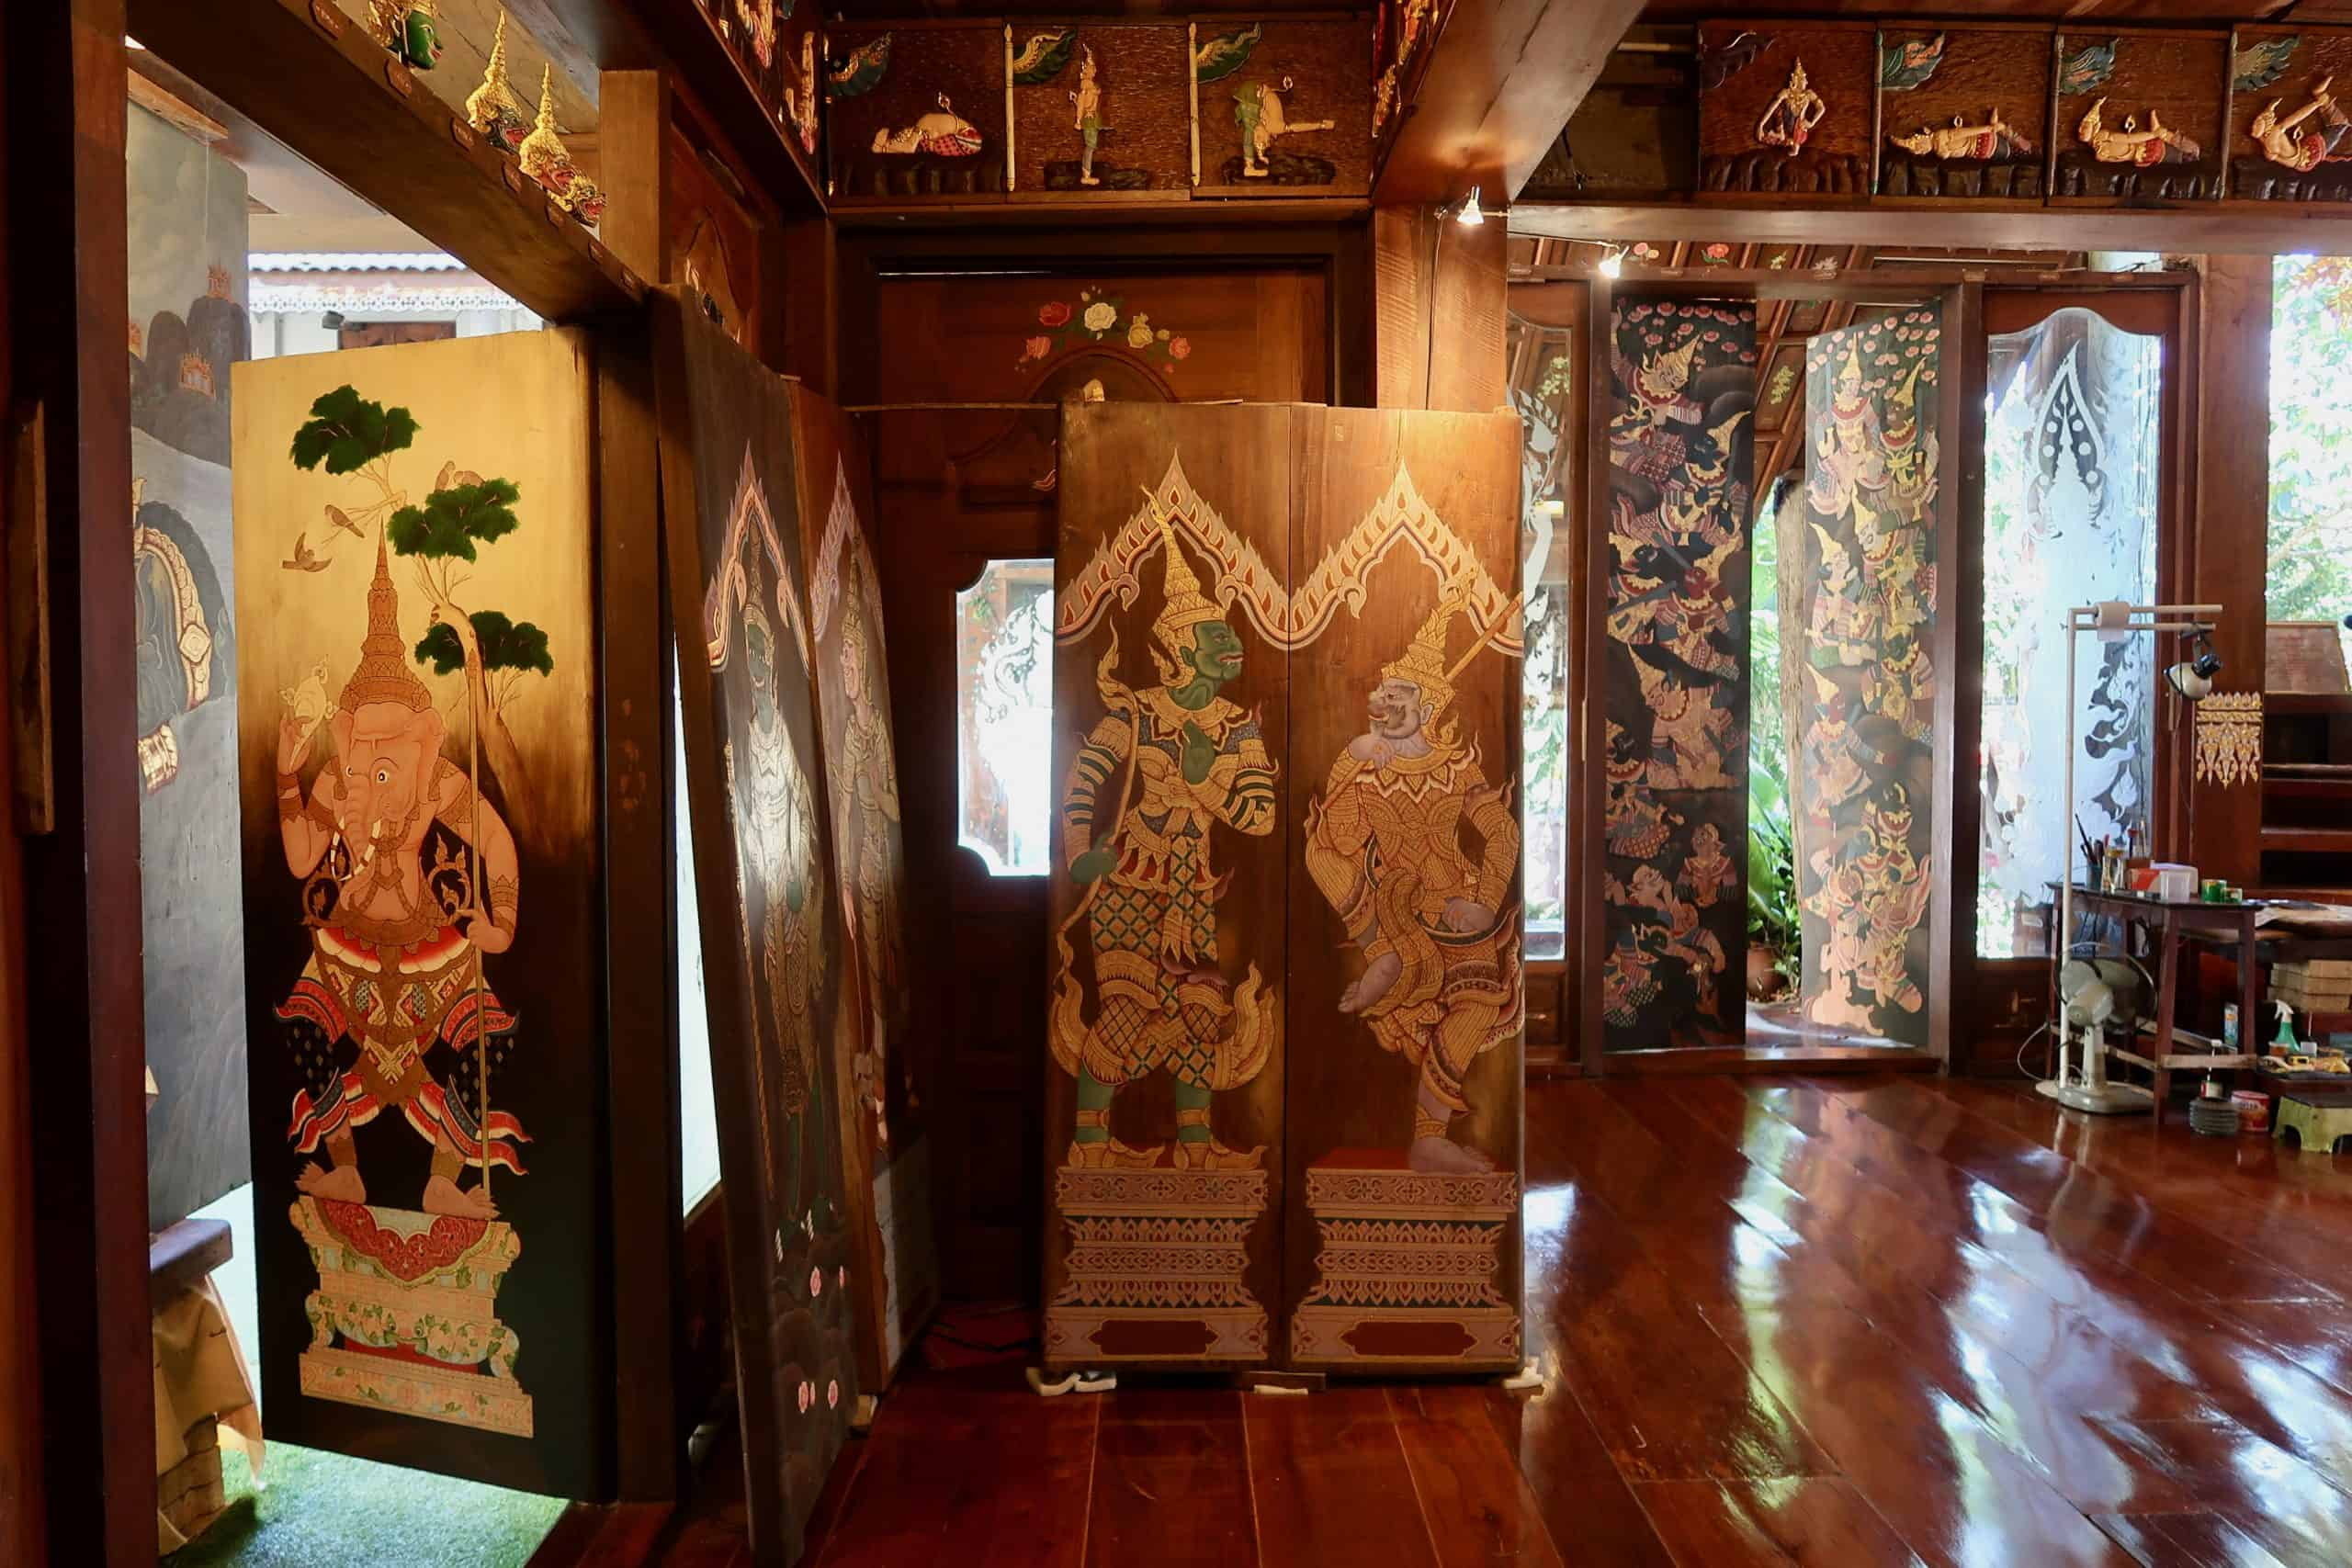 Baan Devalai Artist Temple: Chiang Mai's Wooden Masterpiece to Ganesh